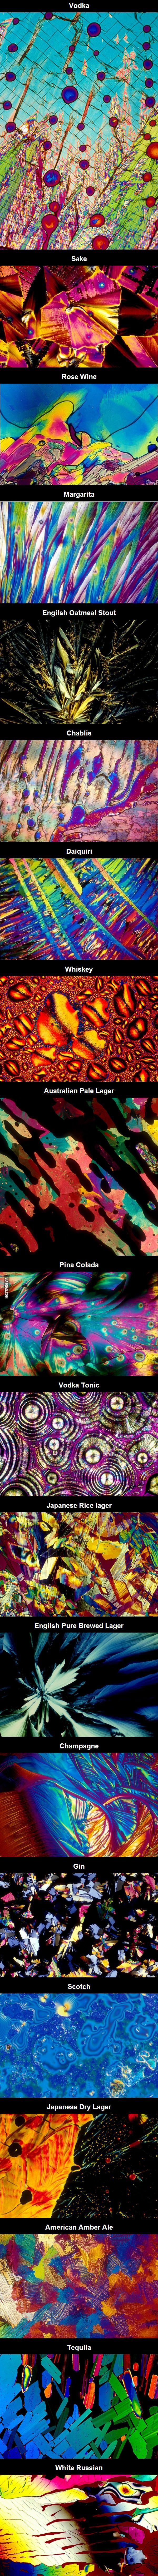 Different alcoholic drinks under a microscope. These would make amazing art for an apartment